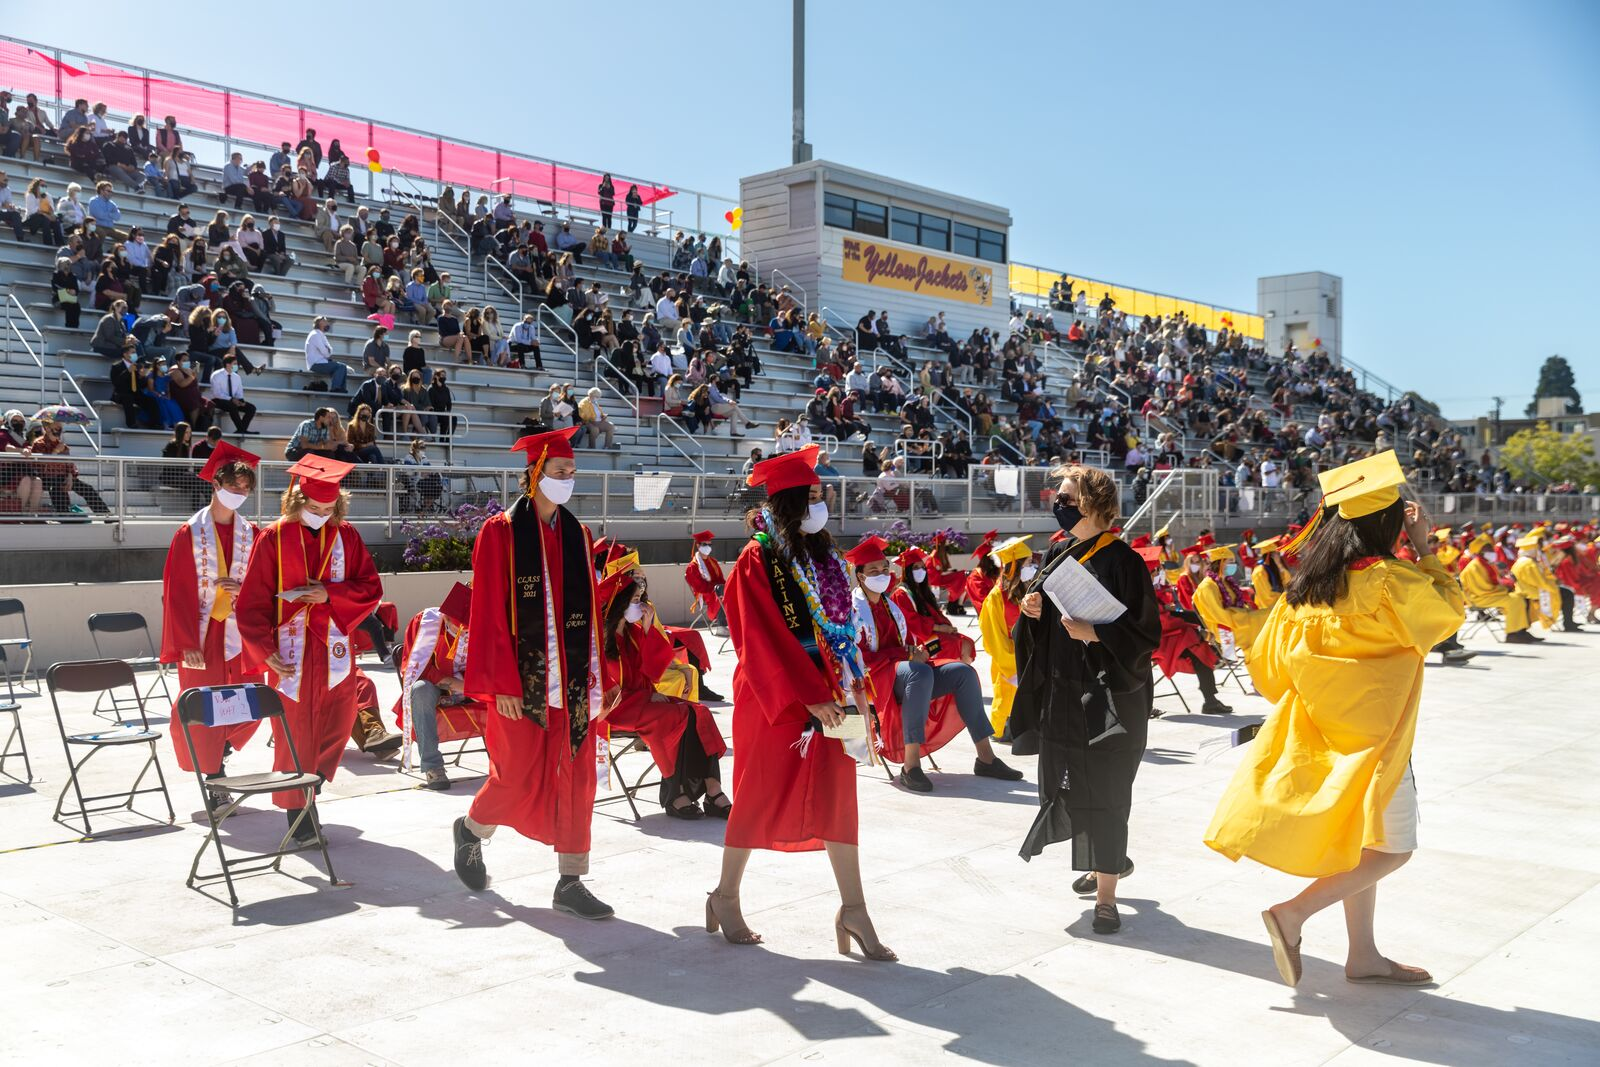 Graduates walk to the stage during the Academic Choice graduation ceremony at Berkeley High School on June 5, 2021. Credit: Kelly Sullivan